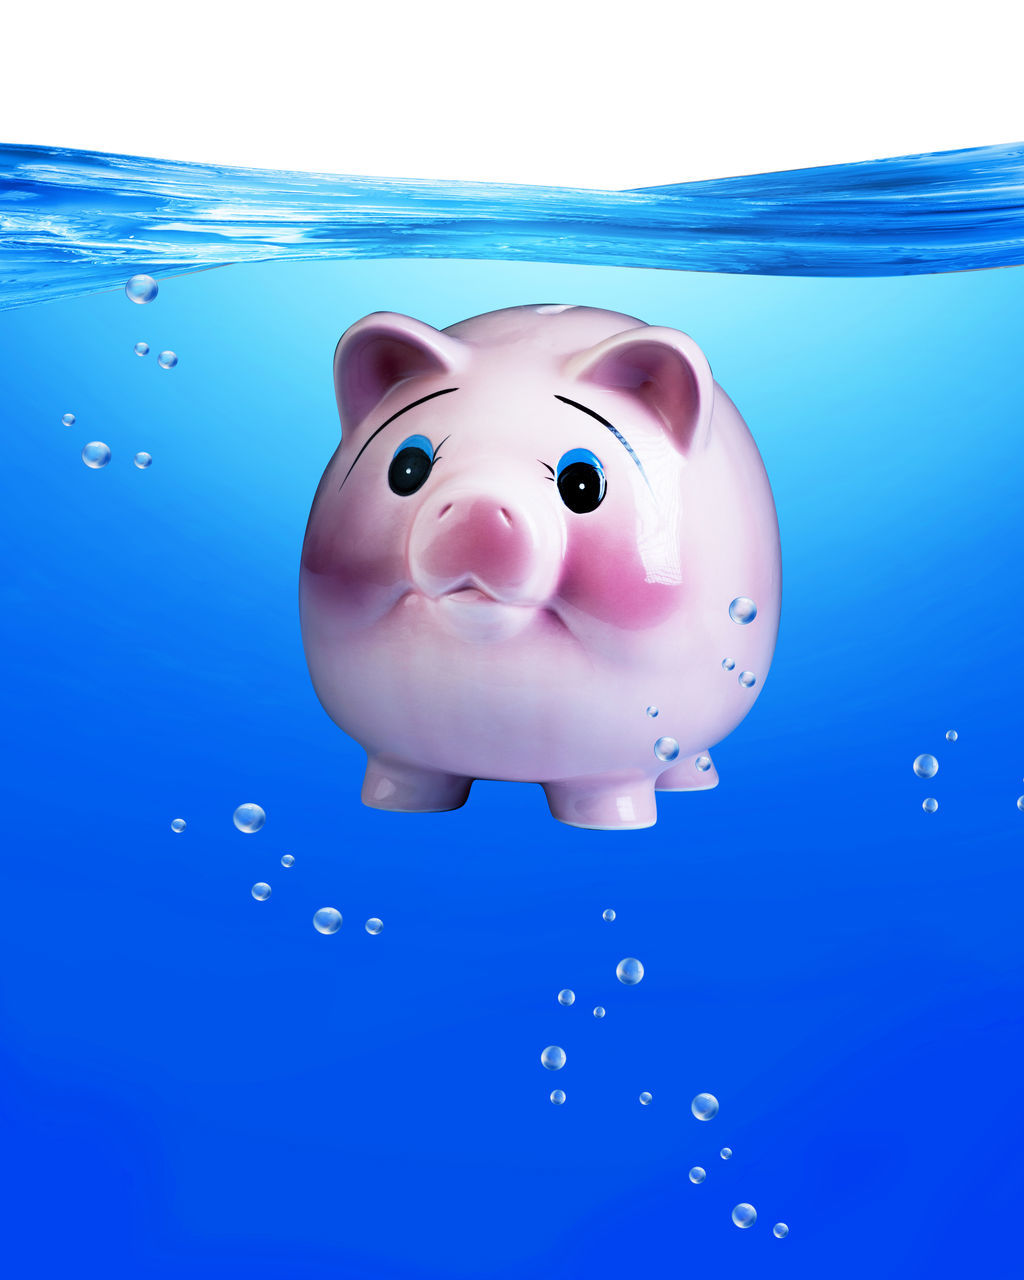 blue, water, piggy bank, savings, childhood, no people, close-up, day